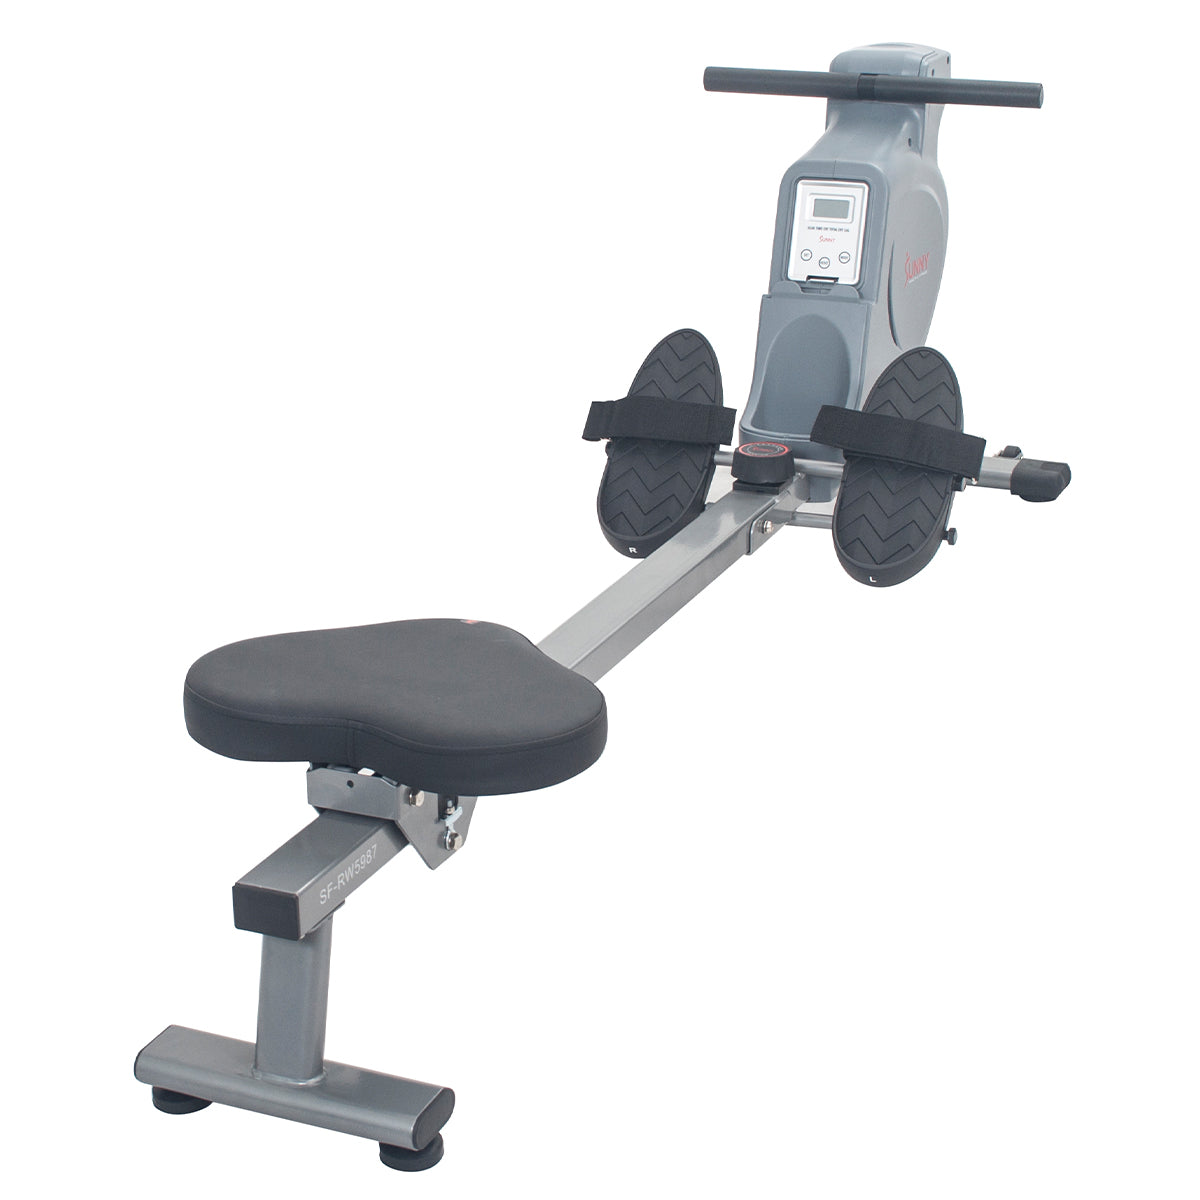 sunny-health-fitness-rowers-magnetic-rower-SF-RW5987-high-seat-height